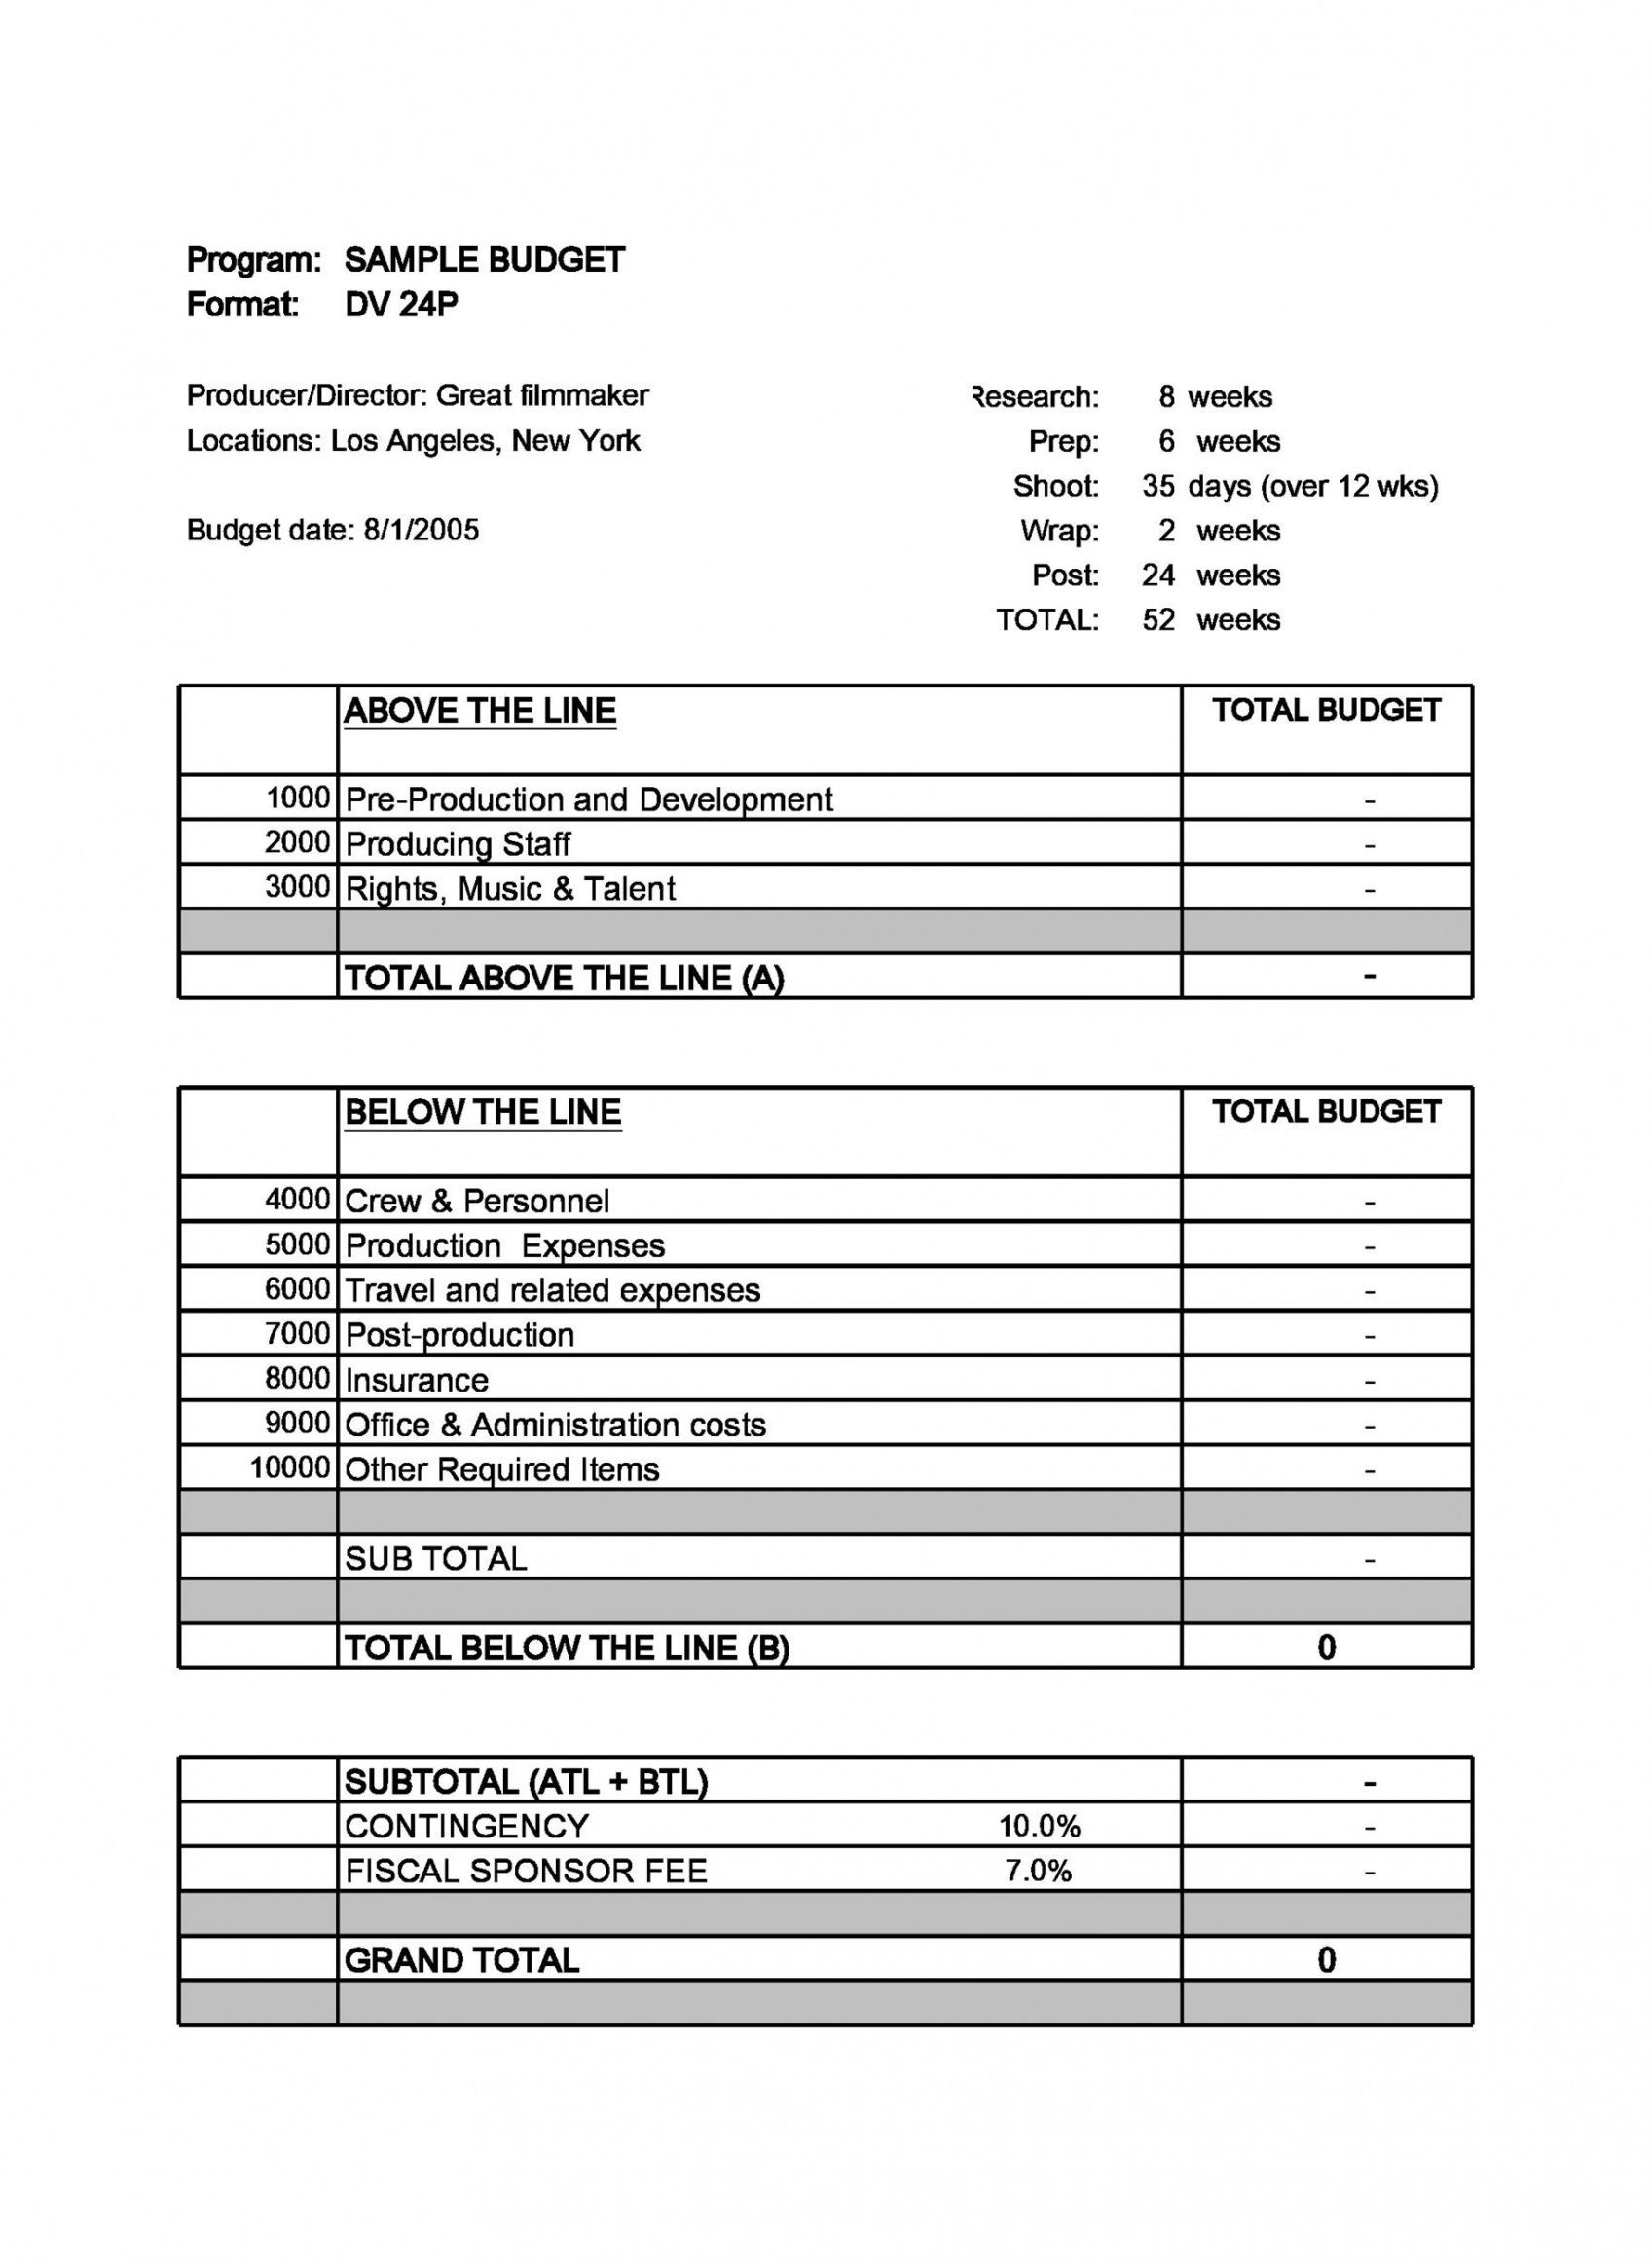 Free 33 Free Film Budget Templates Excel Word Templatelab Film Cost Report Template Pdf Budget Template Excel Budget Template Budgeting Film budget top sheet template